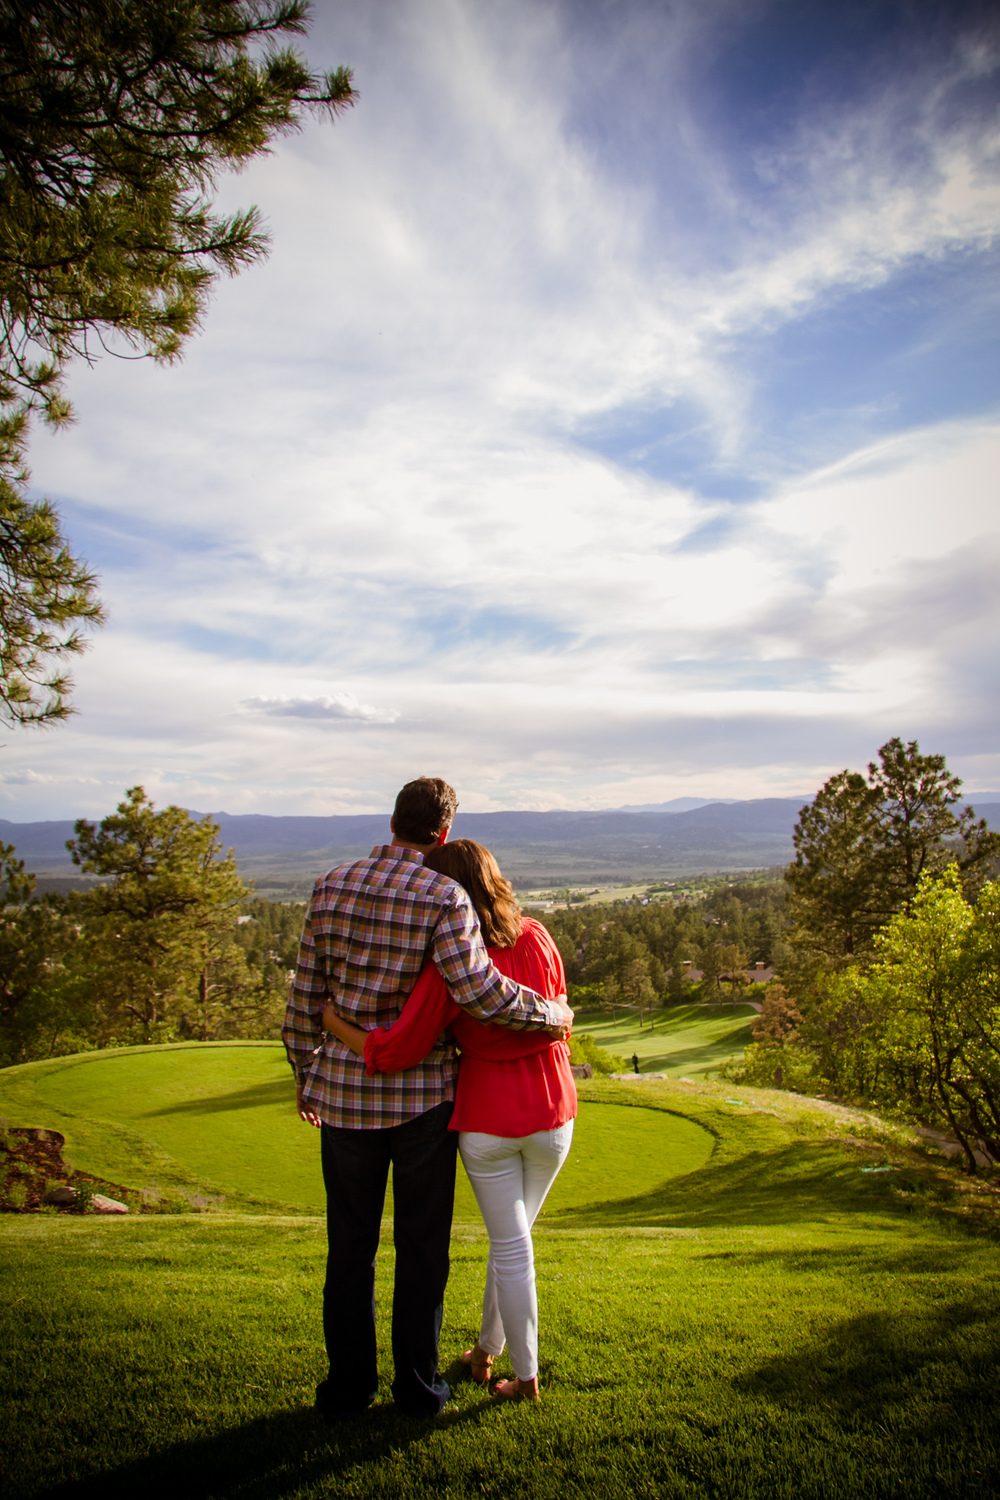 Castle_Pines_Colorado'_Engagement_Photos_001.JPG